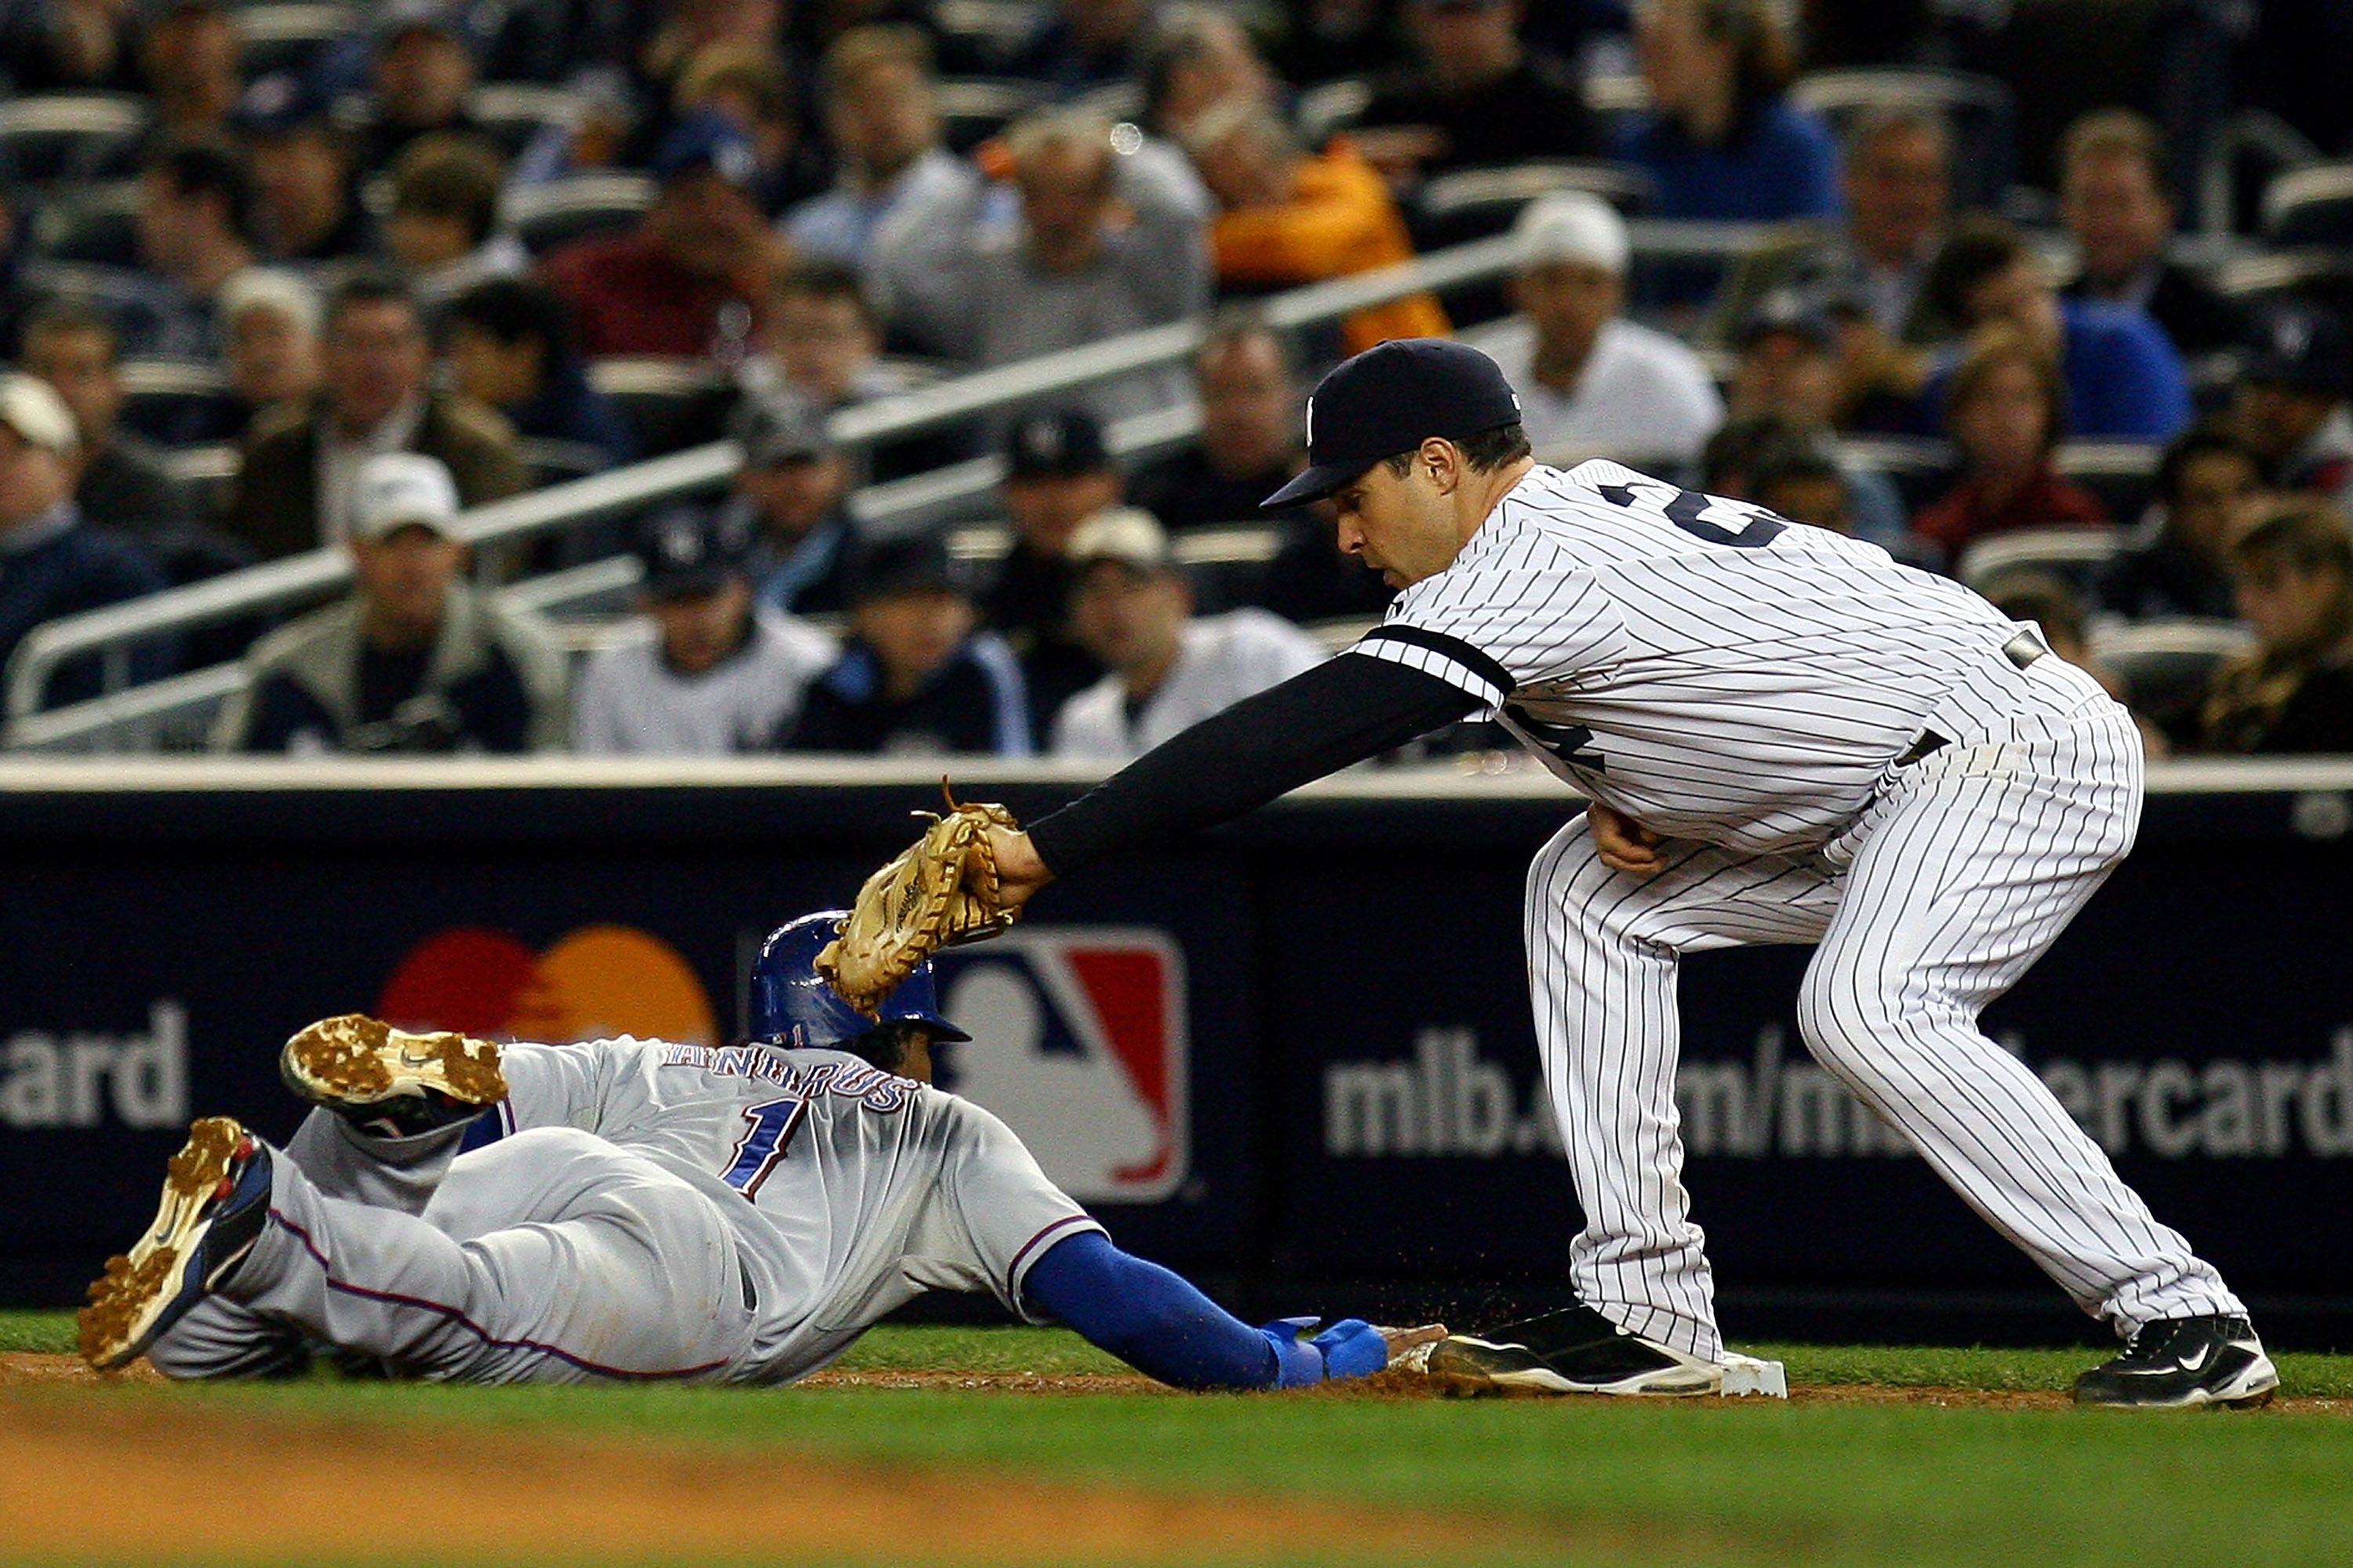 NEW YORK - OCTOBER 19:  Elvis Andrus #1 of the Texas Rangers slides safely into first under the tag of Mark Teixeira #25 of the New York Yankees in Game Four of the ALCS during the 2010 MLB Playoffs at Yankee Stadium on October 19, 2010 in the Bronx borou